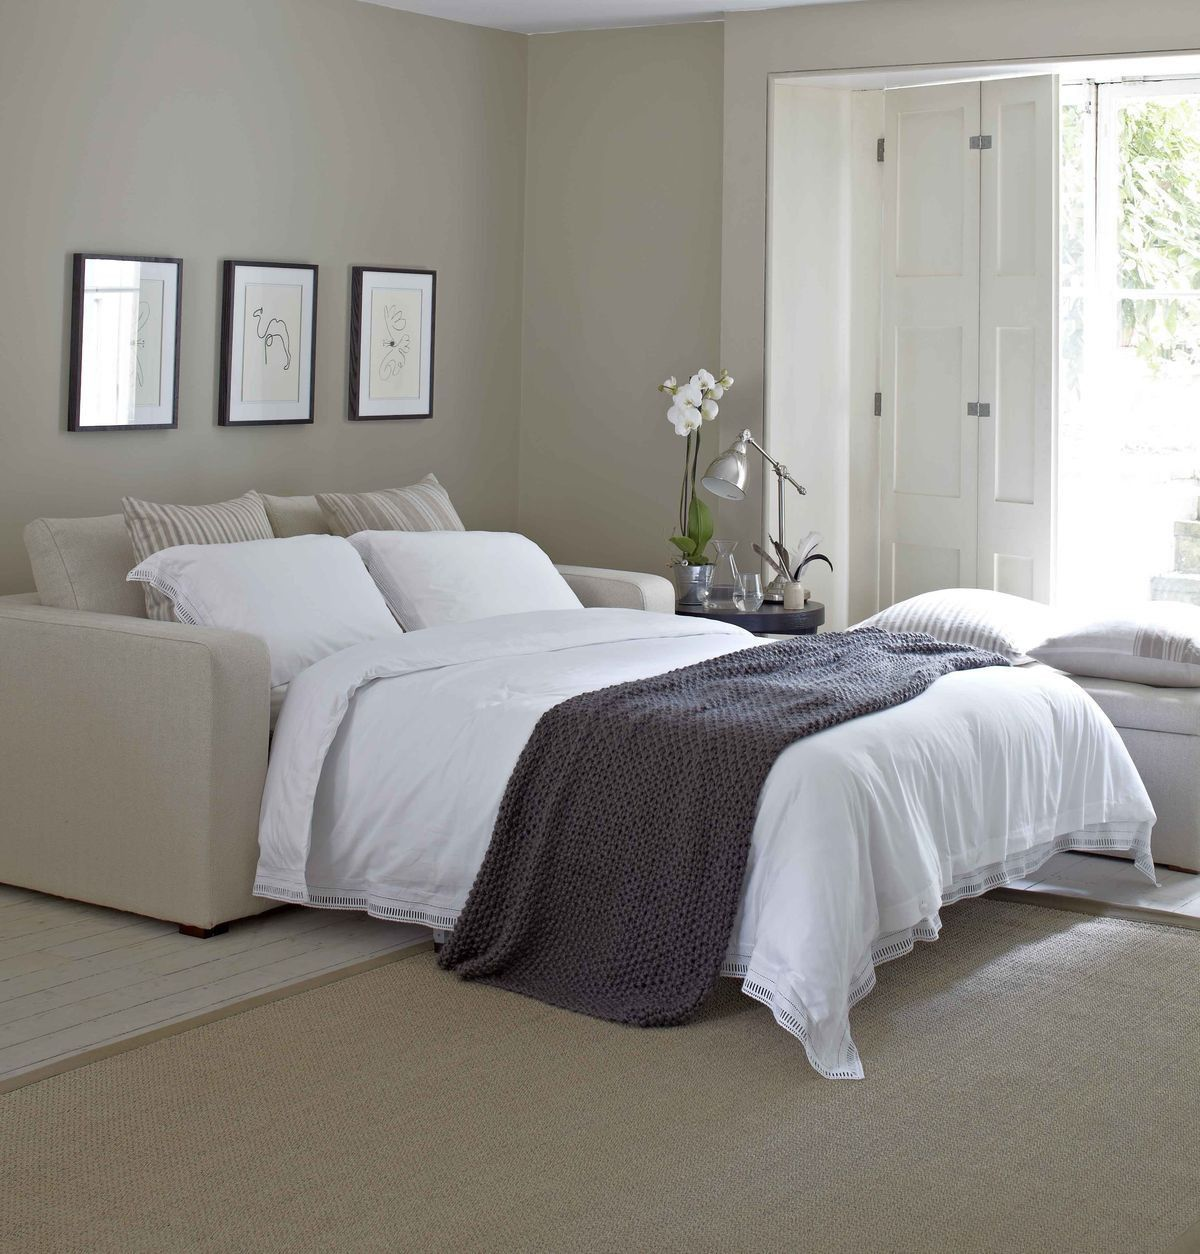 Pin By Khyrah Chavon On Dormitorio Sofa Bed Guest Room Guest Bedroom Bedroom Sofa